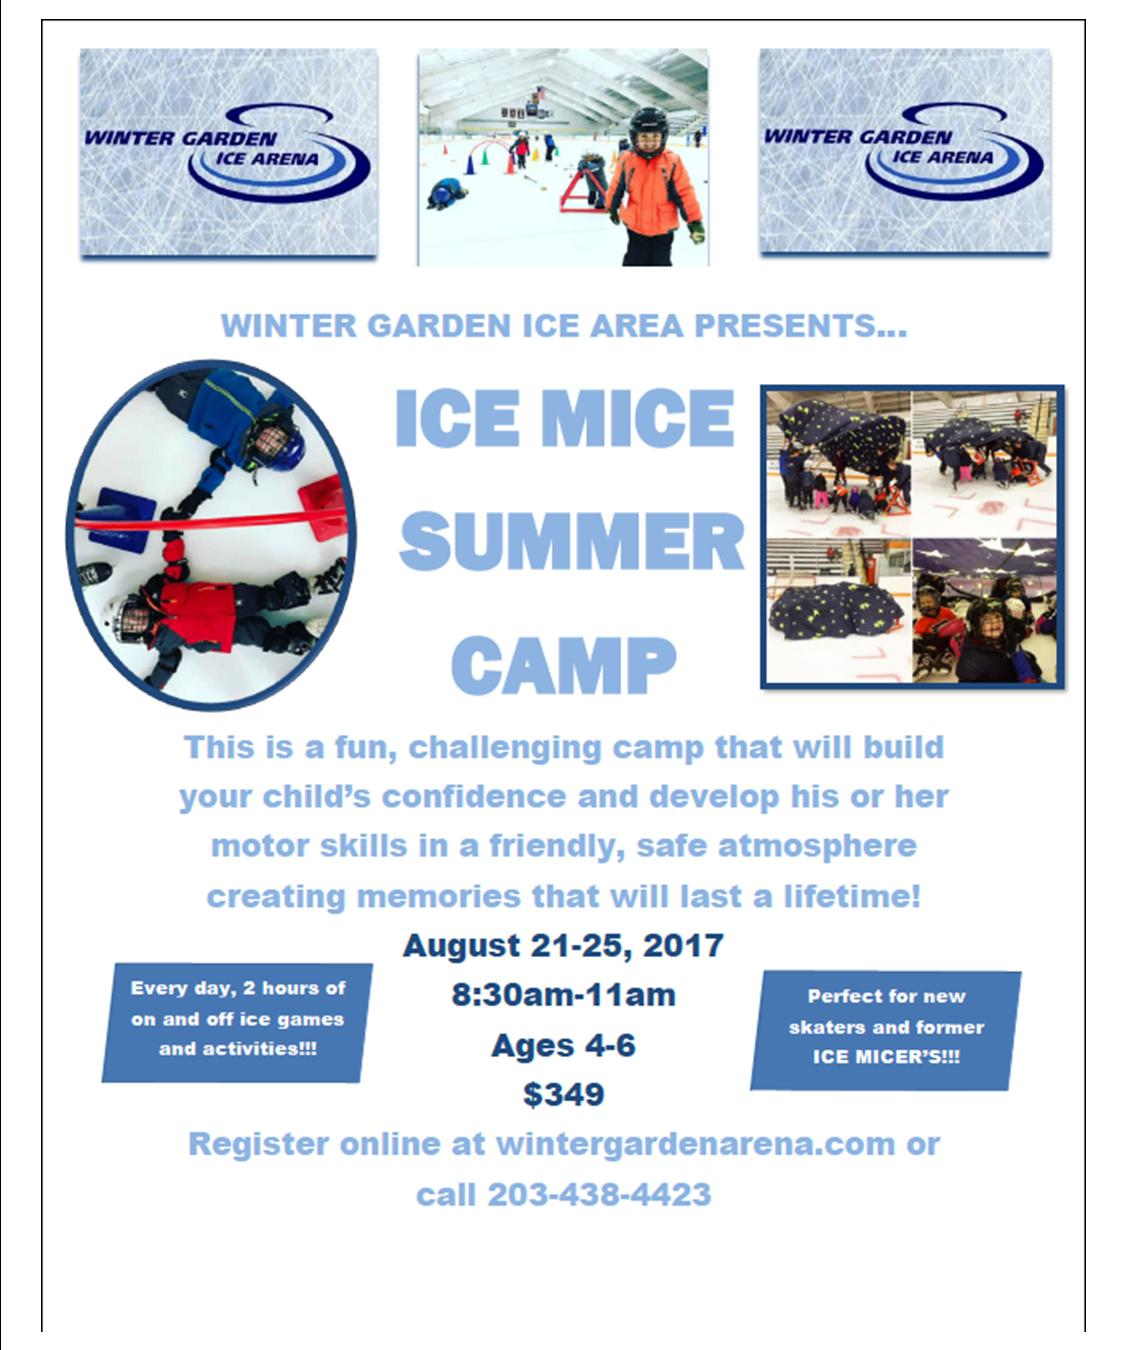 ice mice camp ages 4 6 winter garden ice arena llc